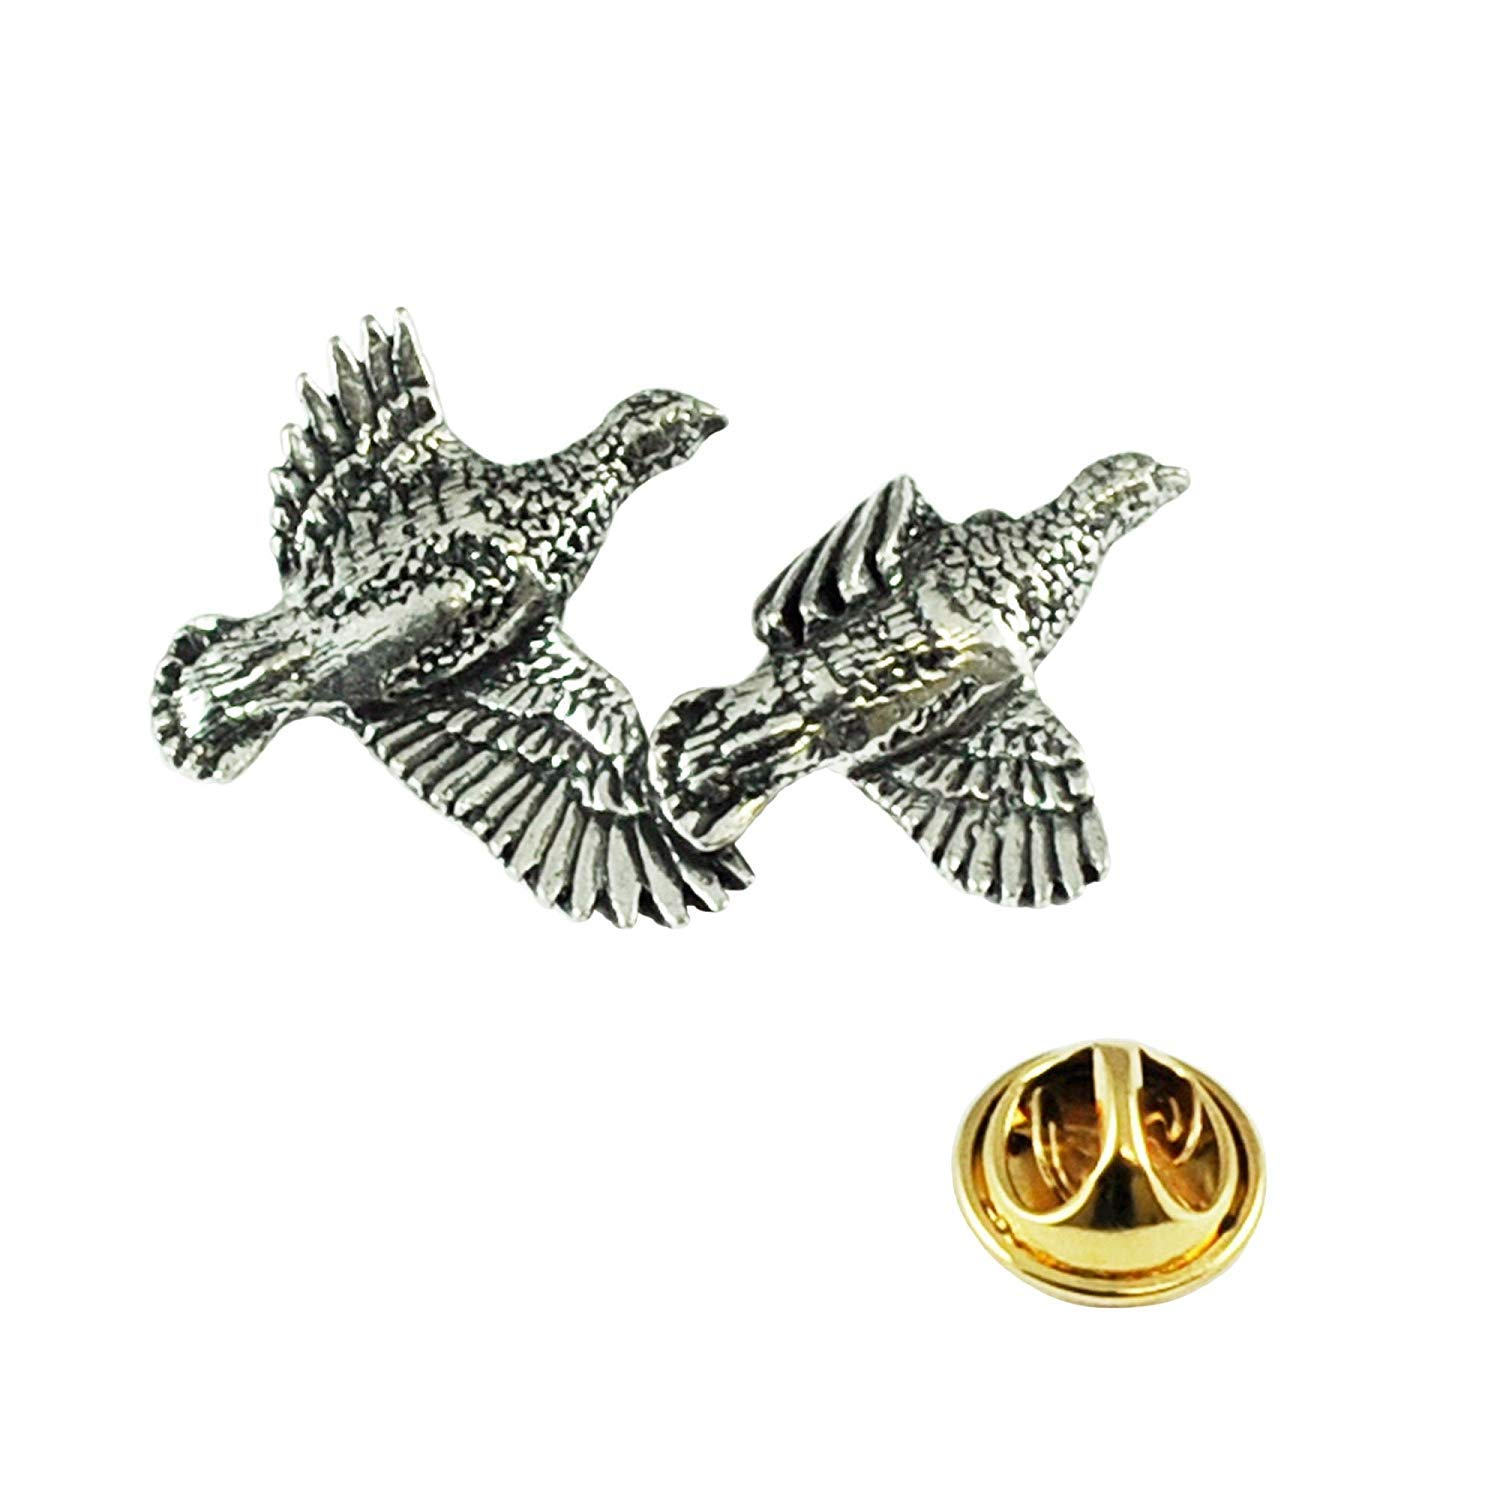 Golden Eagle Handcrafted From English Pewter Lapel Pin Badge Gift Bag